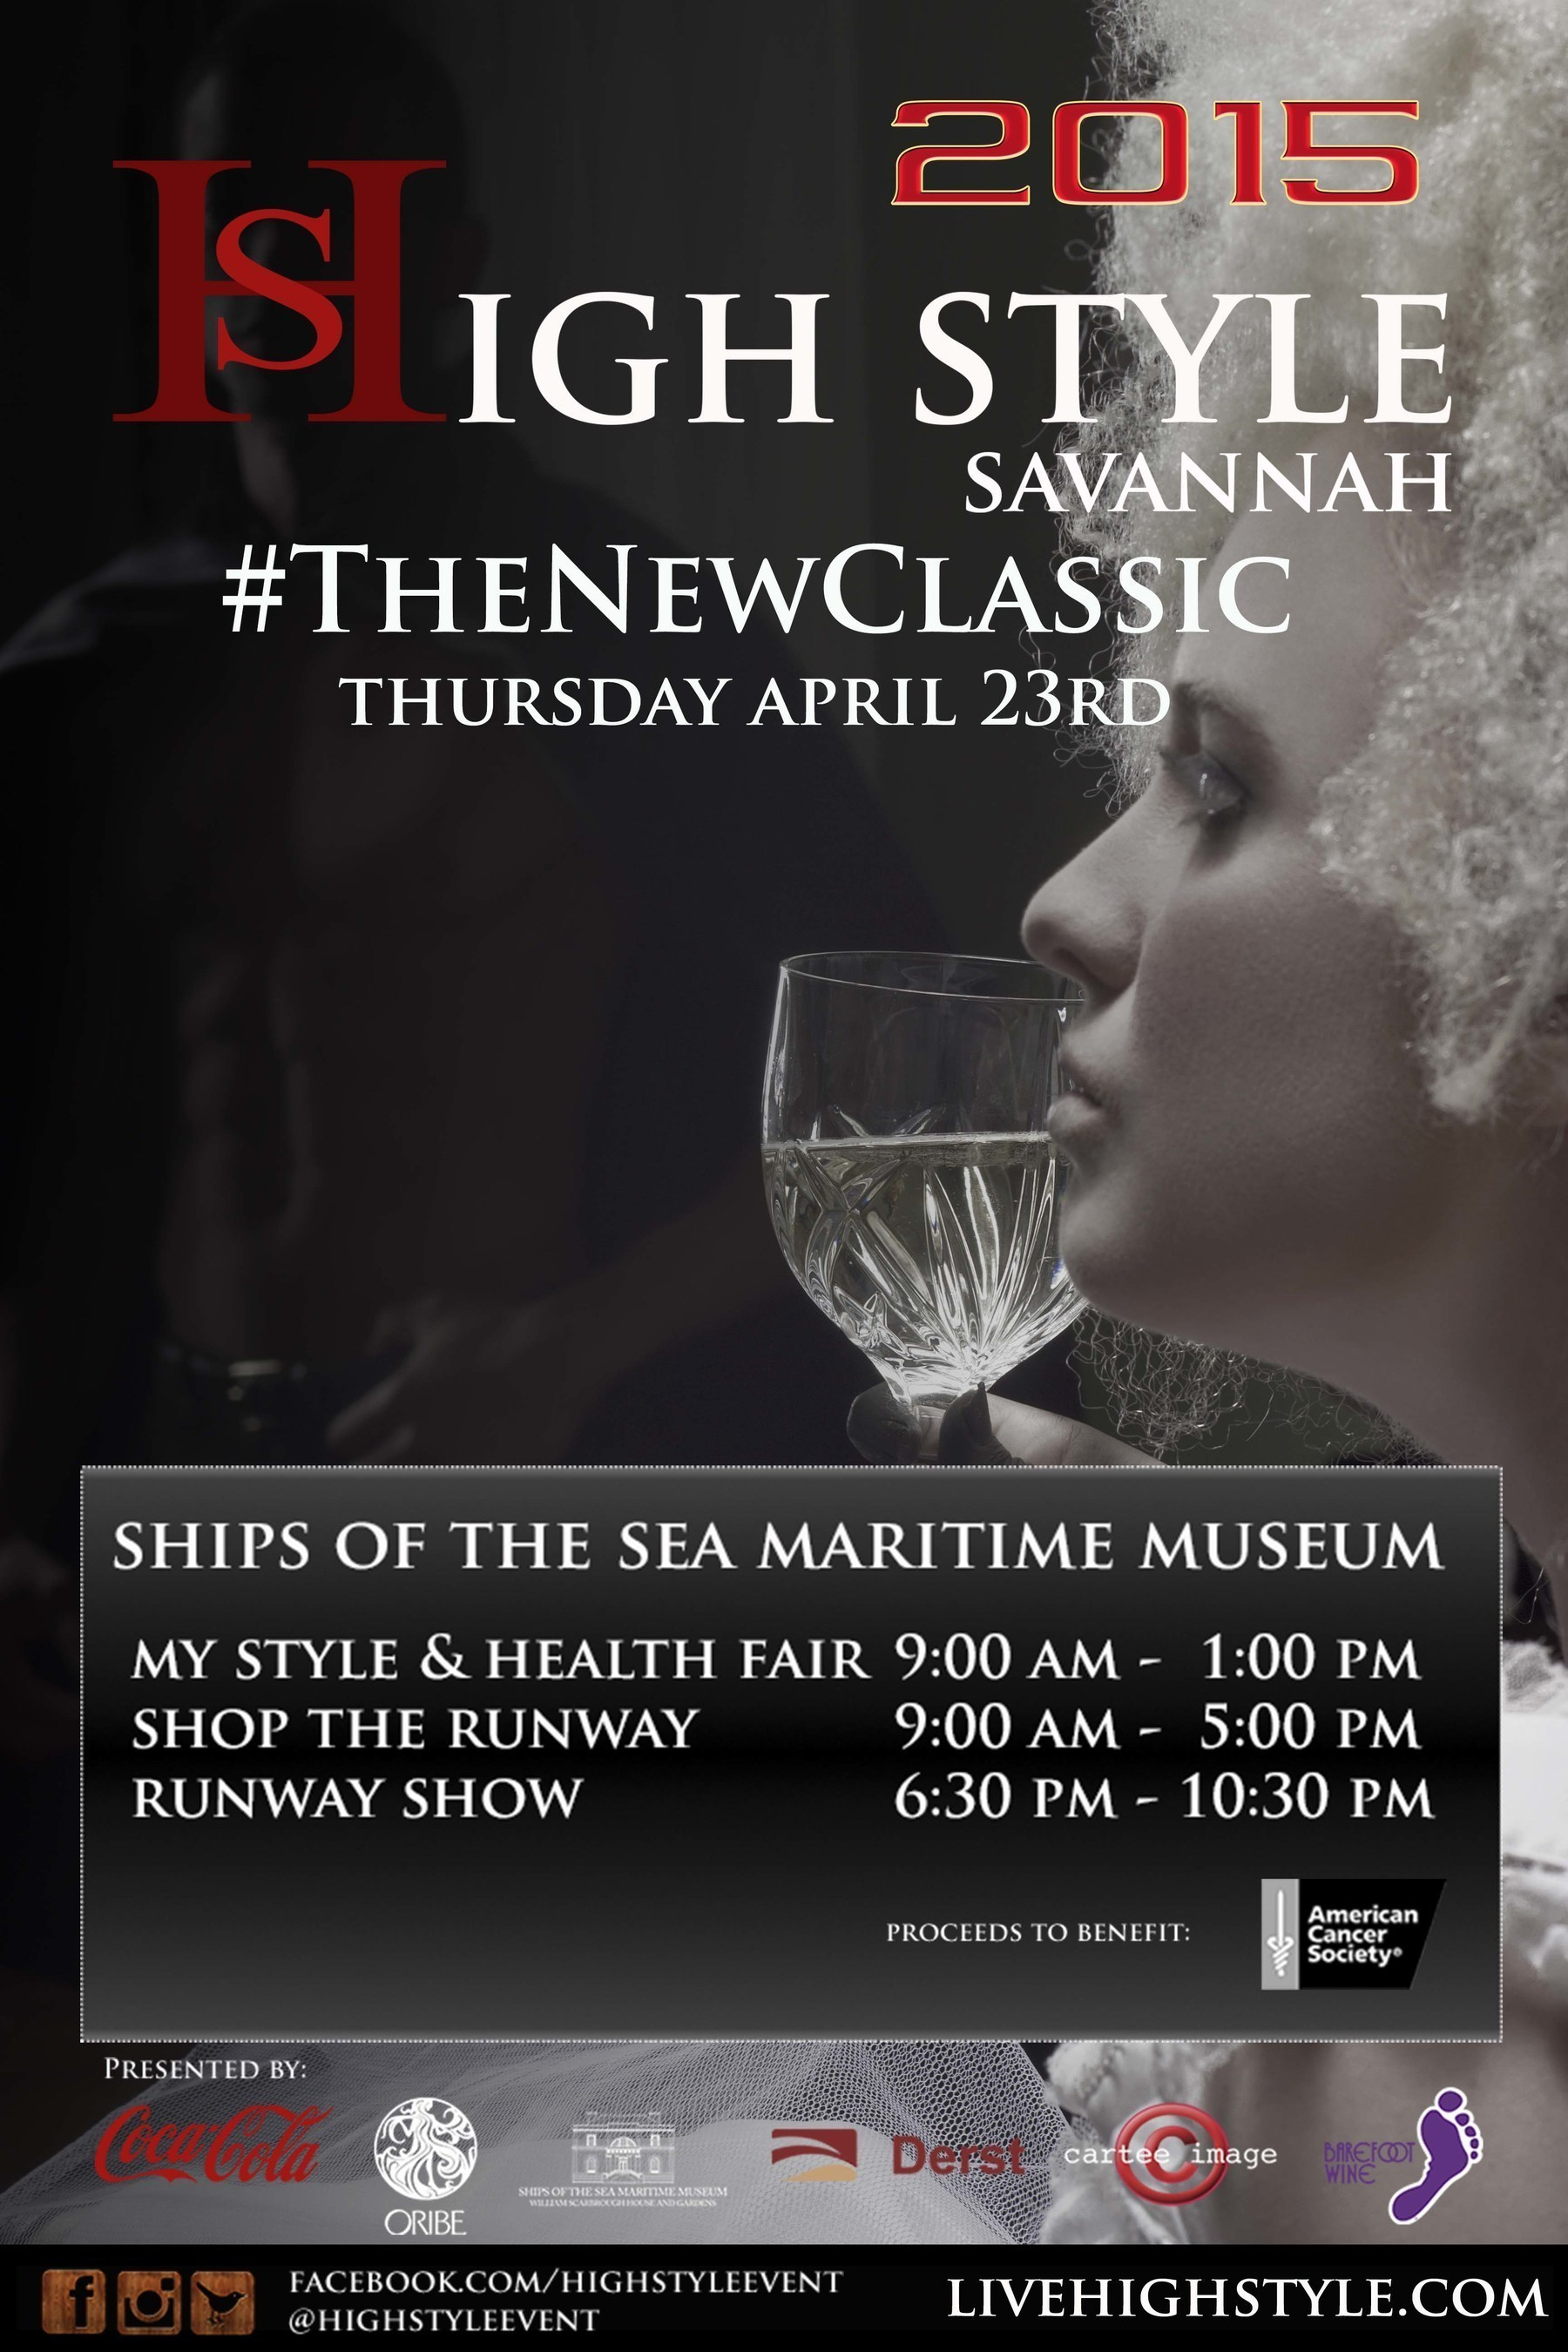 Date: 4/23/15 Place: Ships Of The Sea Museum Charity: American Cancer Society Website: www.LiveHighStyle.com. Presented by Coca-Cola, Barefoot Wine & Bubbly, Derst Baking Company, Ships of the Sea Museum, Oribe, Gary Michael Cartee Legacy Fund The theme, #TheNewClassic, is inspired by the revitalization of downtown Savannah and the concept of a modern city holding firm to its original 13th U.S. colony roots. A colonial era gone by mixed with a modern 21st Century culture.  ...